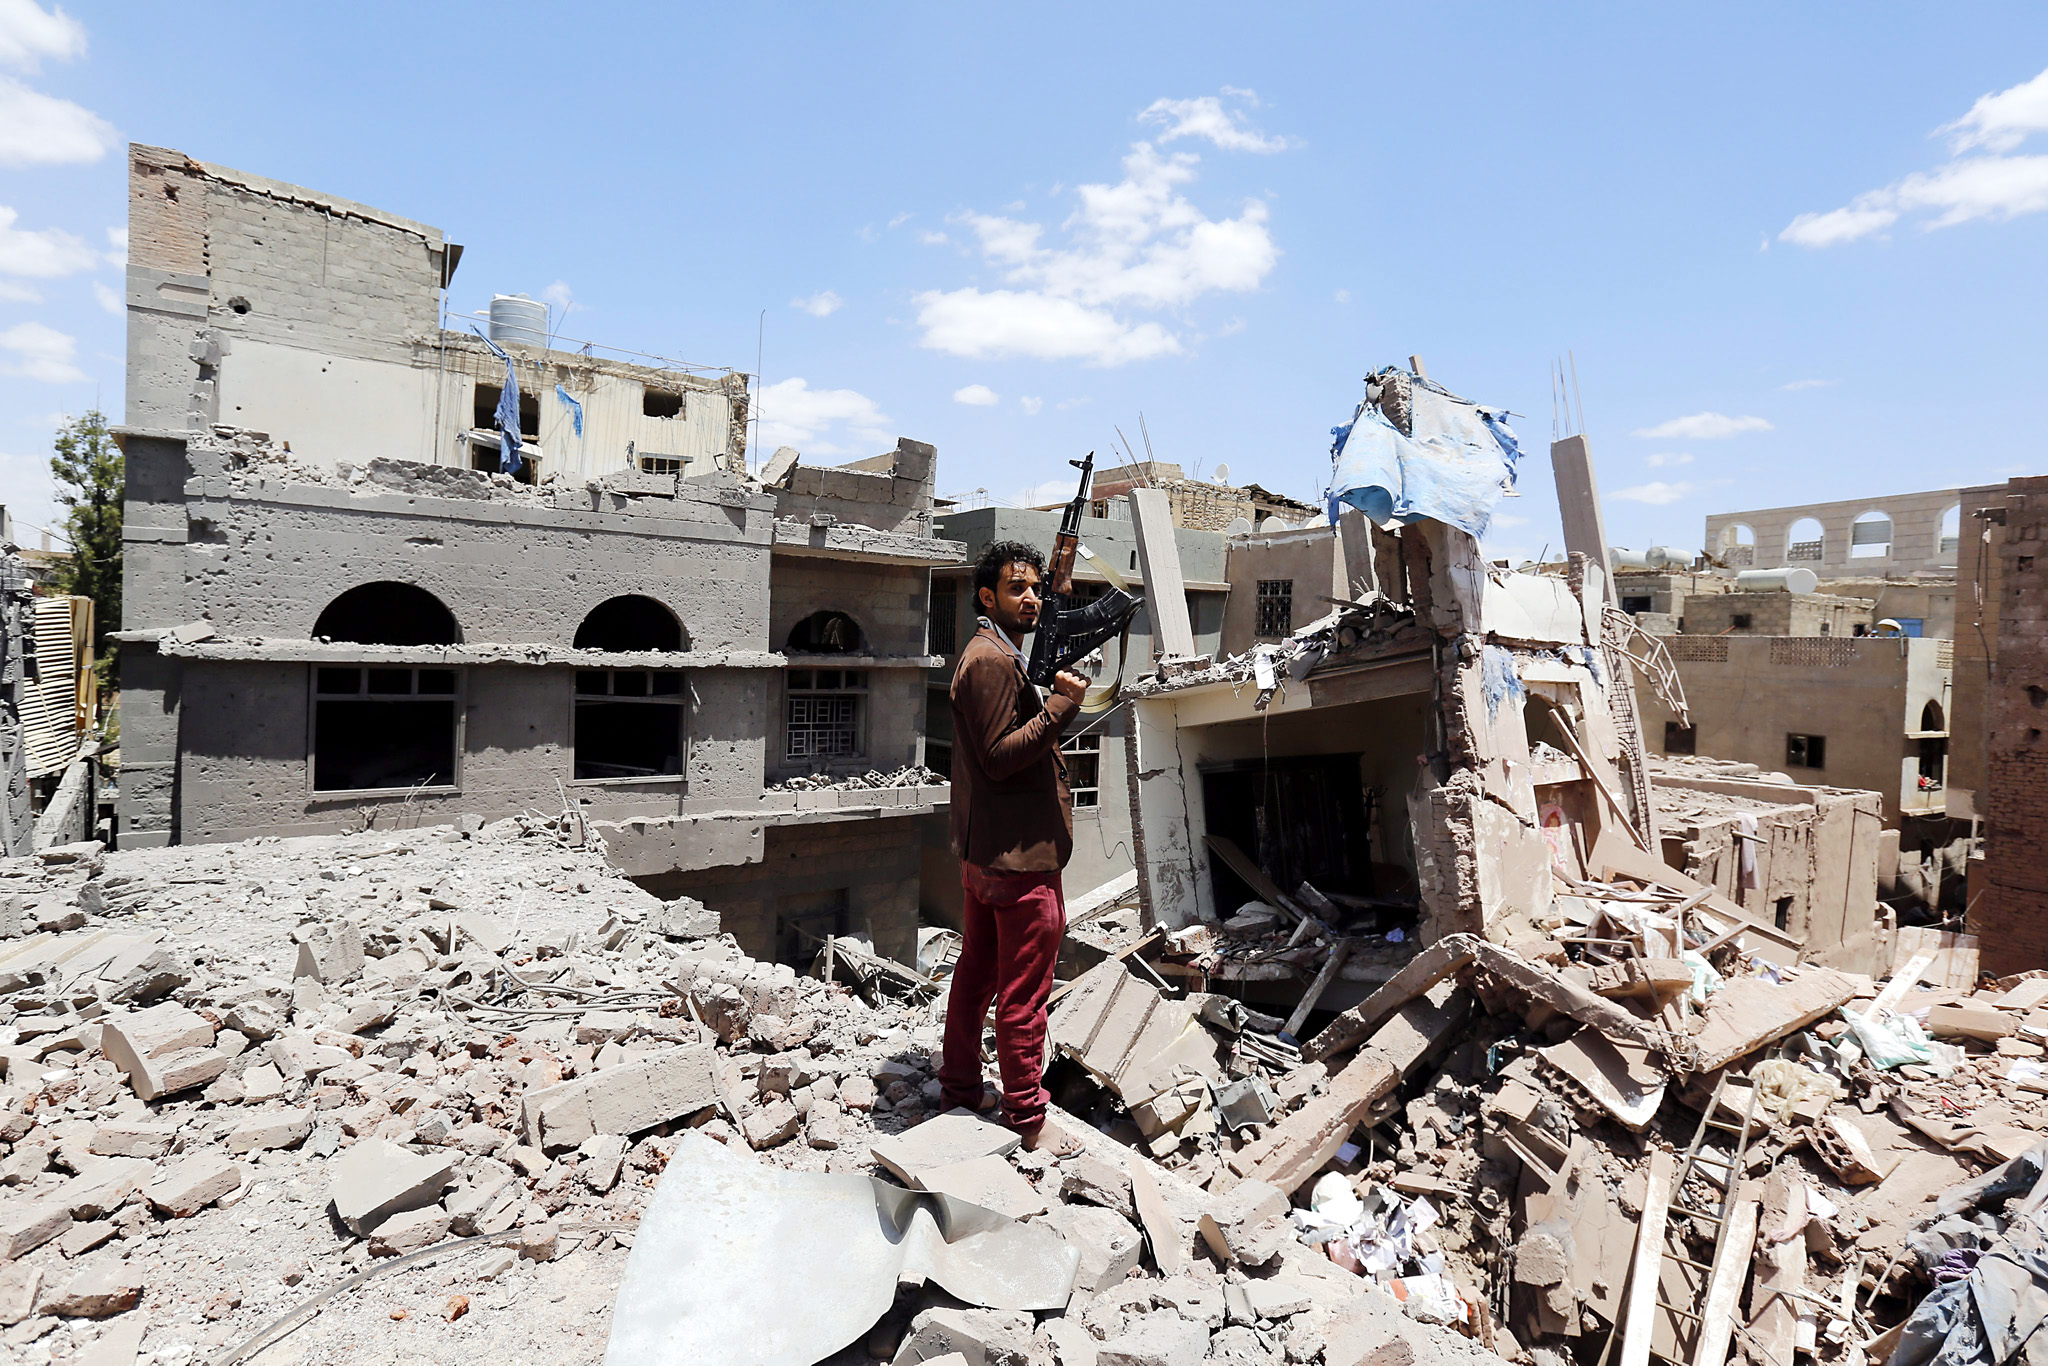 Saudi-led airstrikes intensify on Sanaía...epa04923741 An armed Yemeni man stands amid the rubble of destroyed houses after they were hit by an airstrike carried out by the Saudi-led coalition in Sanaía, Yemen, 10 September 2015. The Saudi-led coalition against Yemen's Houthi rebels hinted that an attack on Sana'a was not imminent despite the recent build-up of Gulf forces in Marib province, east of the rebel-held capital. Yemen has seen six months of intense conflict since the mainly Shiite Houthi rebels advanced on the southern city of Aden, forcing President Abd Rabu Mansour Hadi to flee to Riyadh.  EPA/YAHYA ARHAB